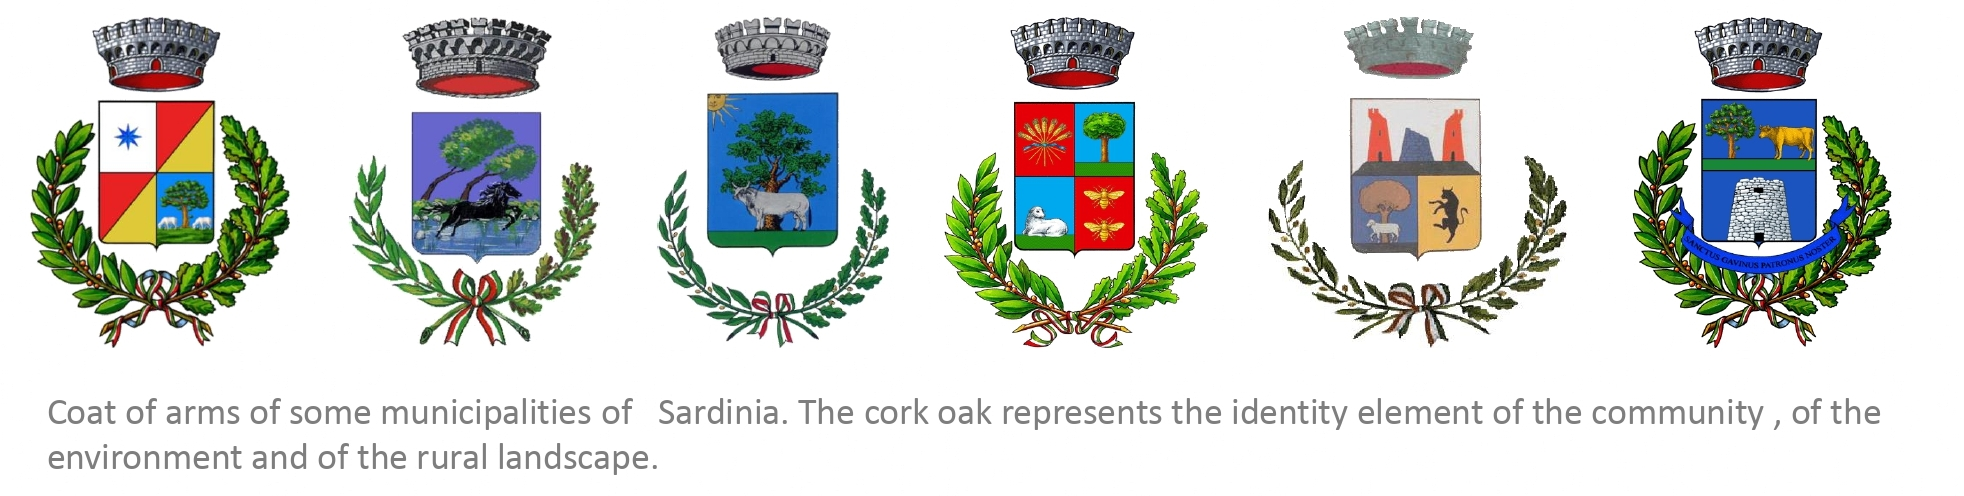 Coat of arms of some municipalities of Sardinia. The cork oak represents the identity element of the community, the environment and the rural landscape.